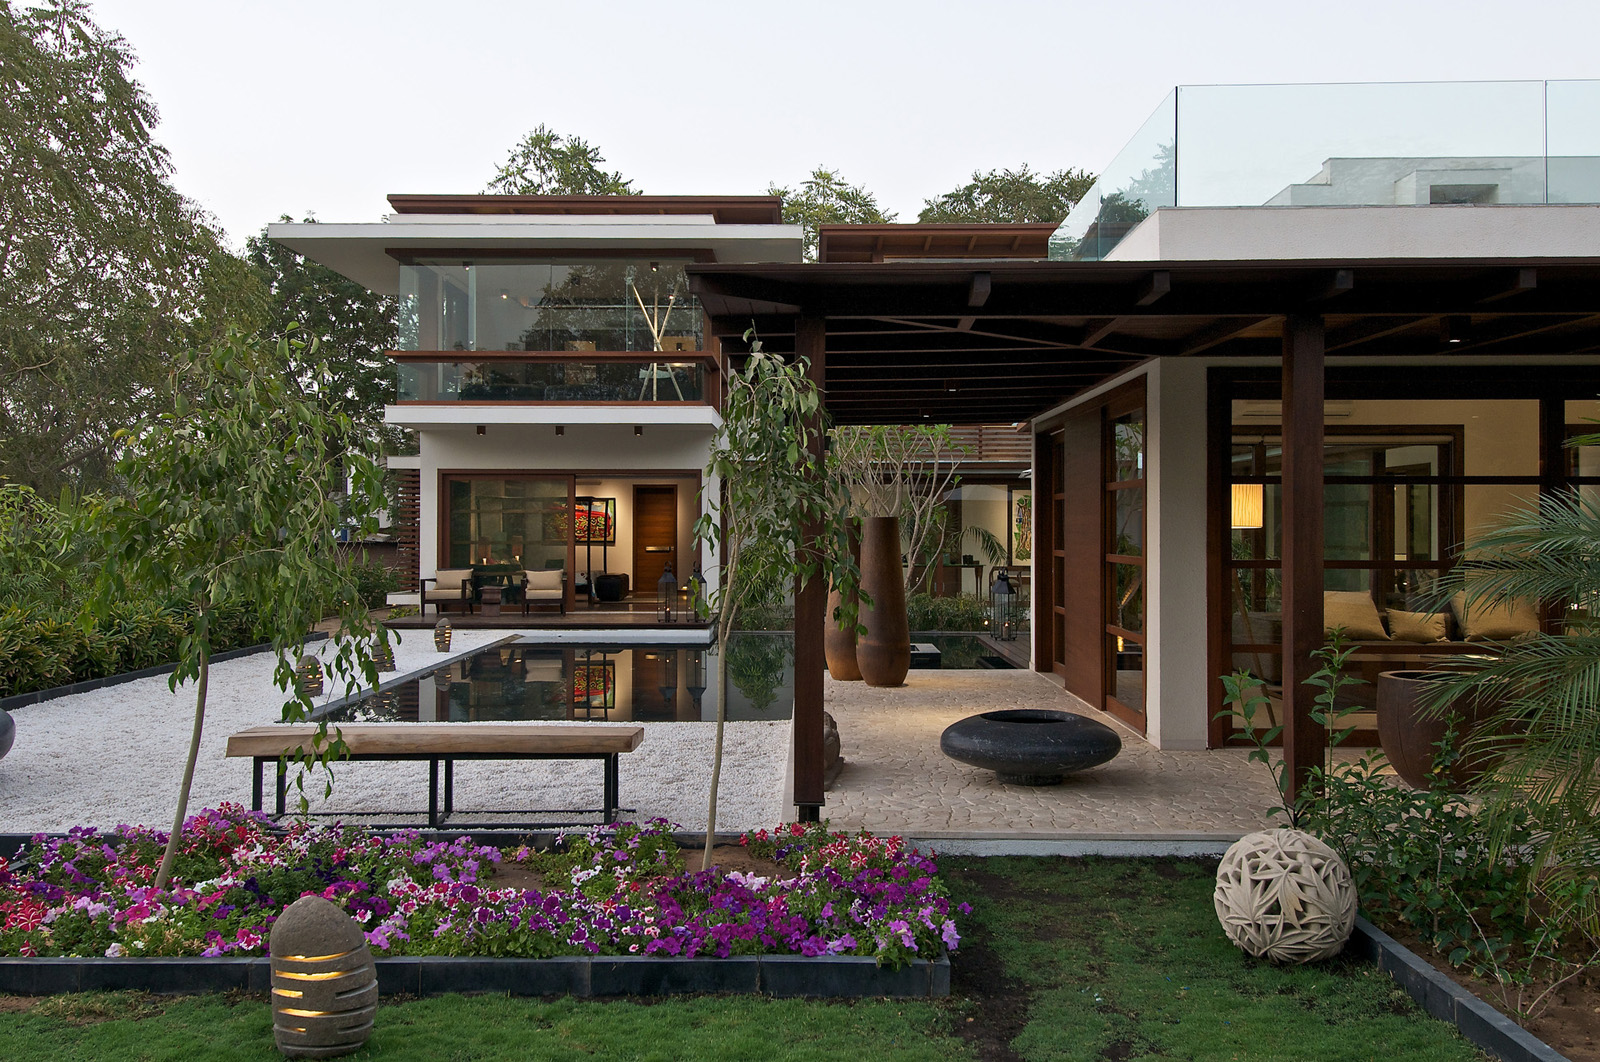 Design Bathroom Timeless Contemporary House In India With Courtyard Zen